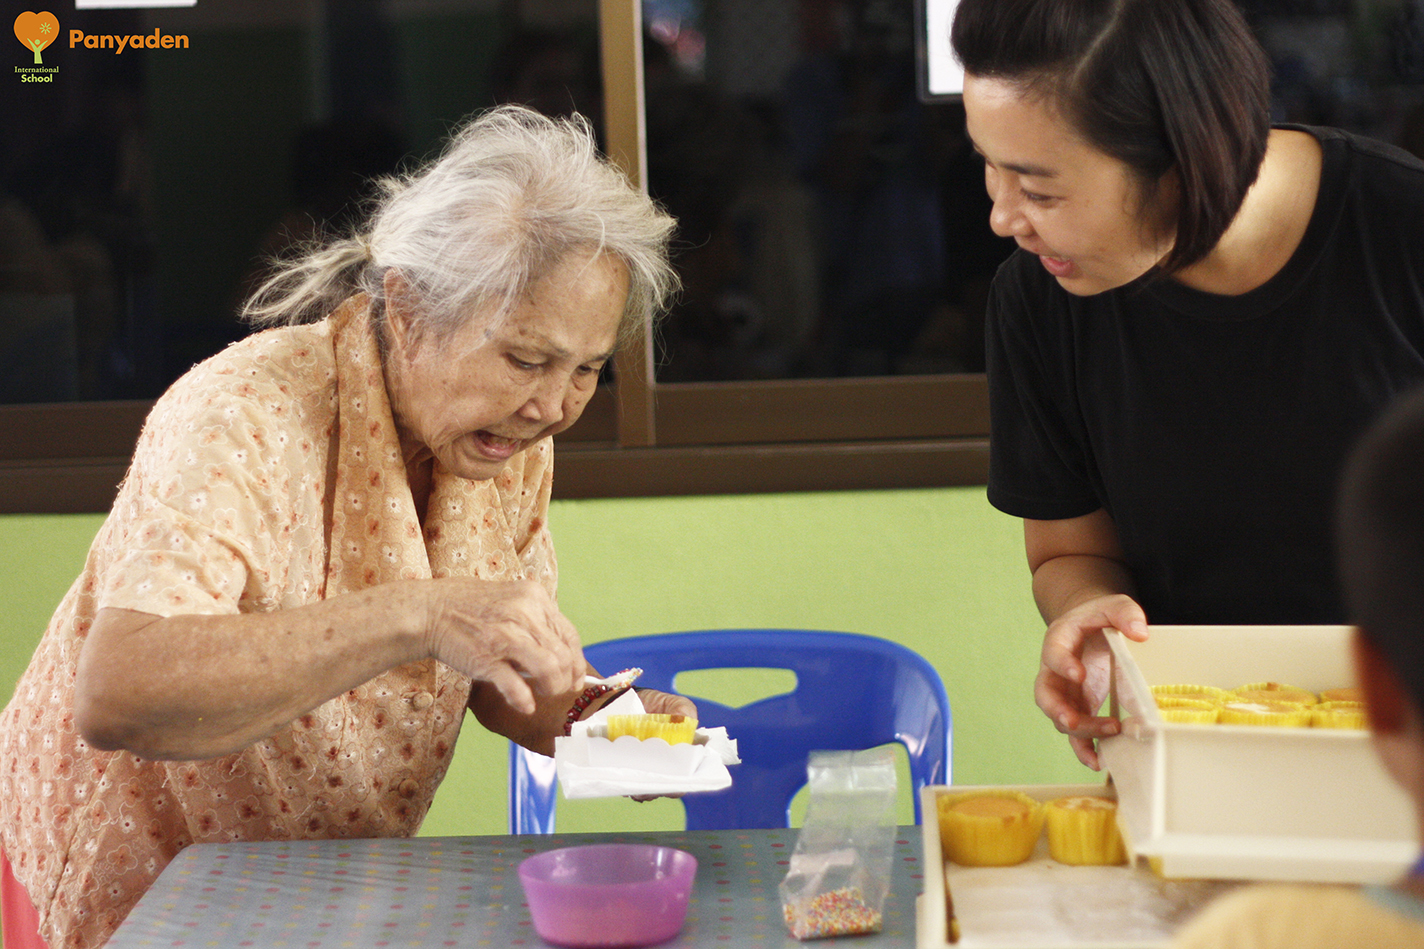 Panyaden Social Contribution Day: Panyaden teacher with elderly resident at elder aId home in Chiang Mai